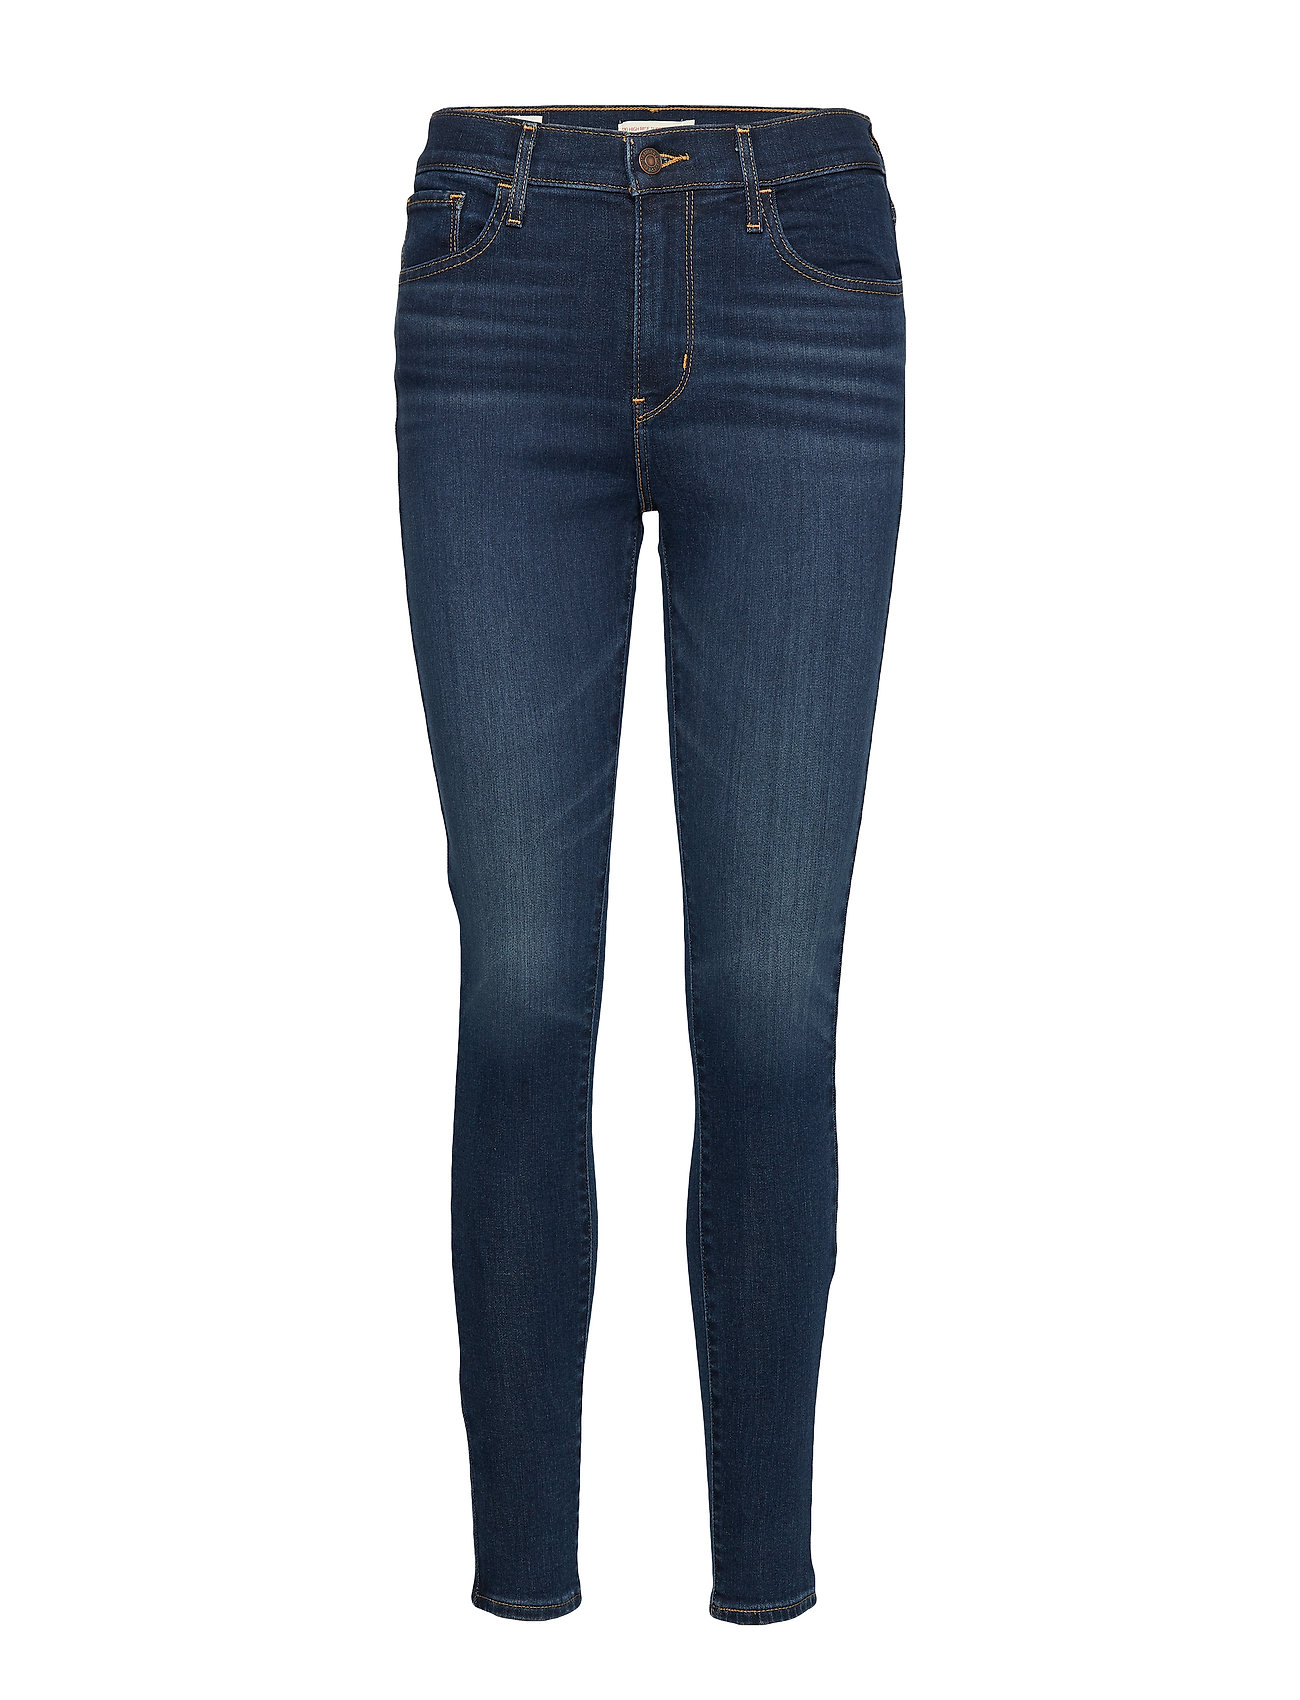 LEVI´S Women 720 HIRISE SUPER SKINNY SALT L - DARK INDIGO - WORN IN